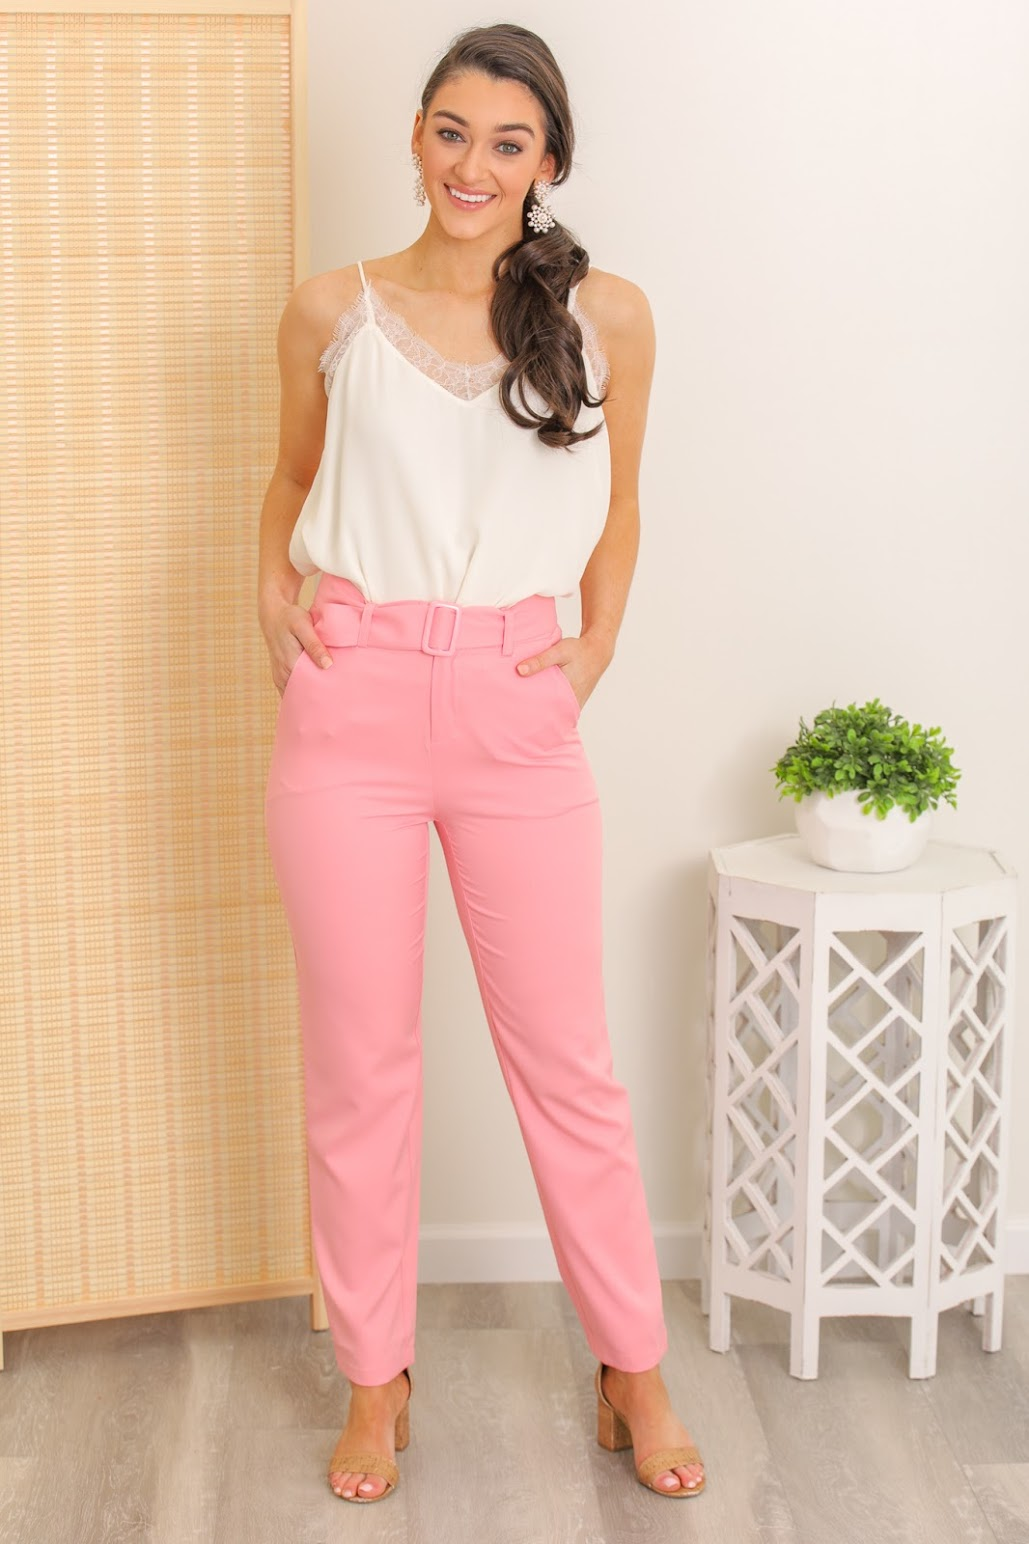 Cotton Candy Pink Trousers